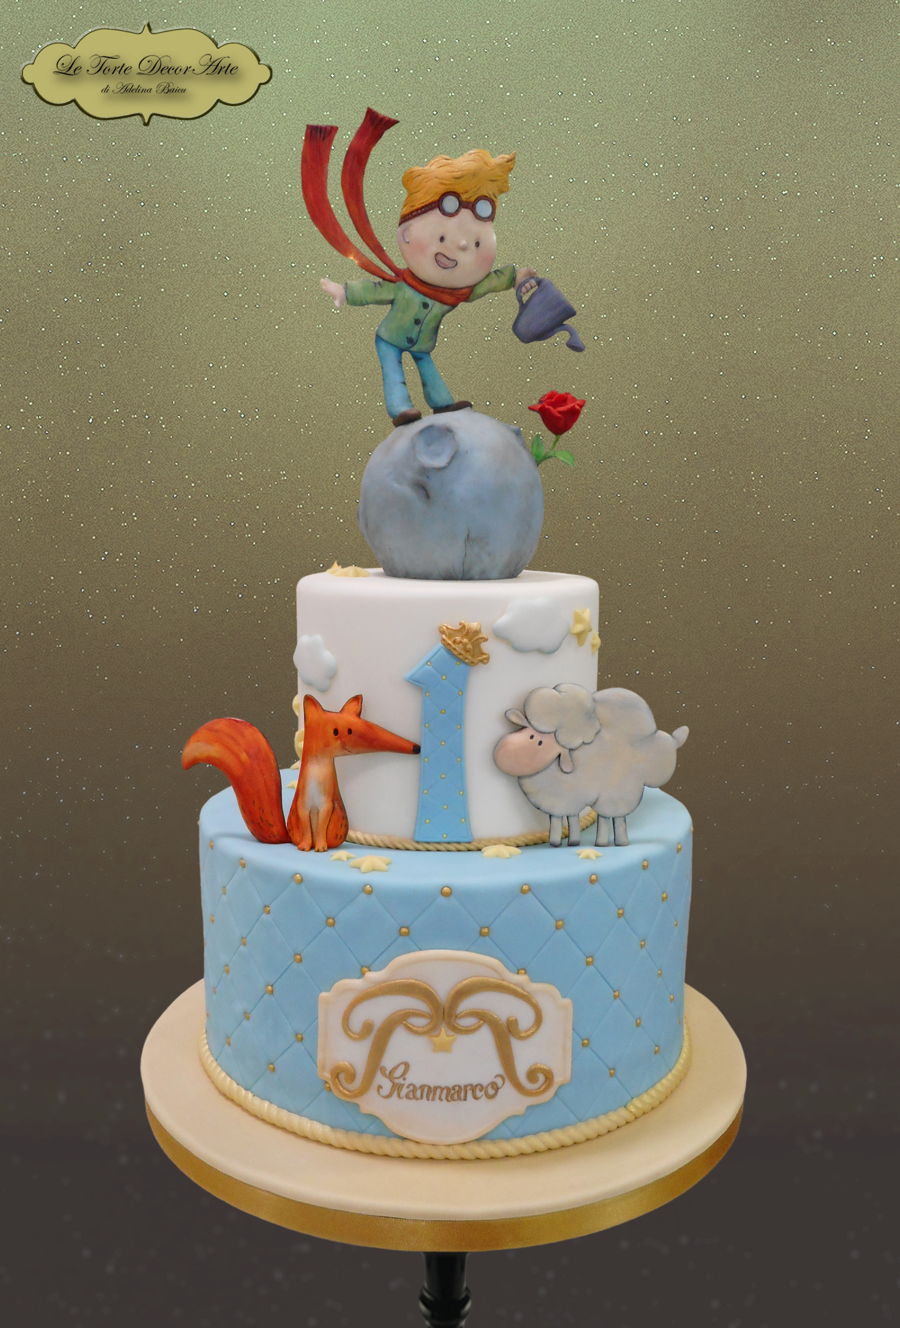 Little Prince Cake on Cake Central